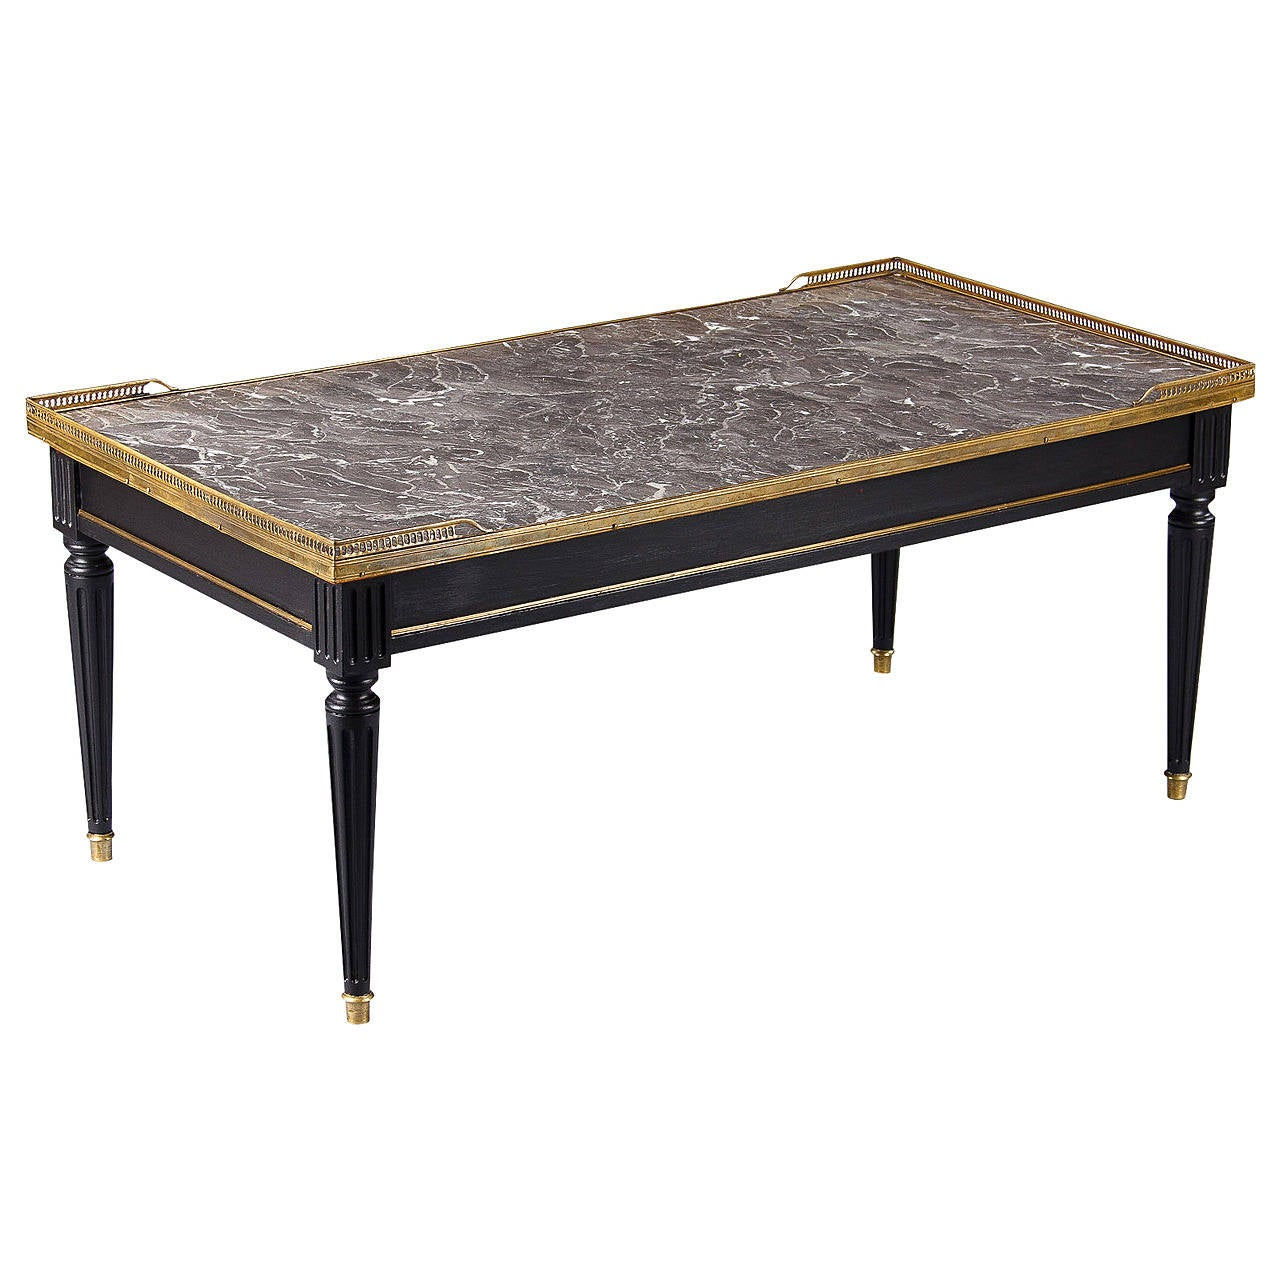 French Louis Xvi Style Marble Top Coffee Table 1940s At 1stdibs